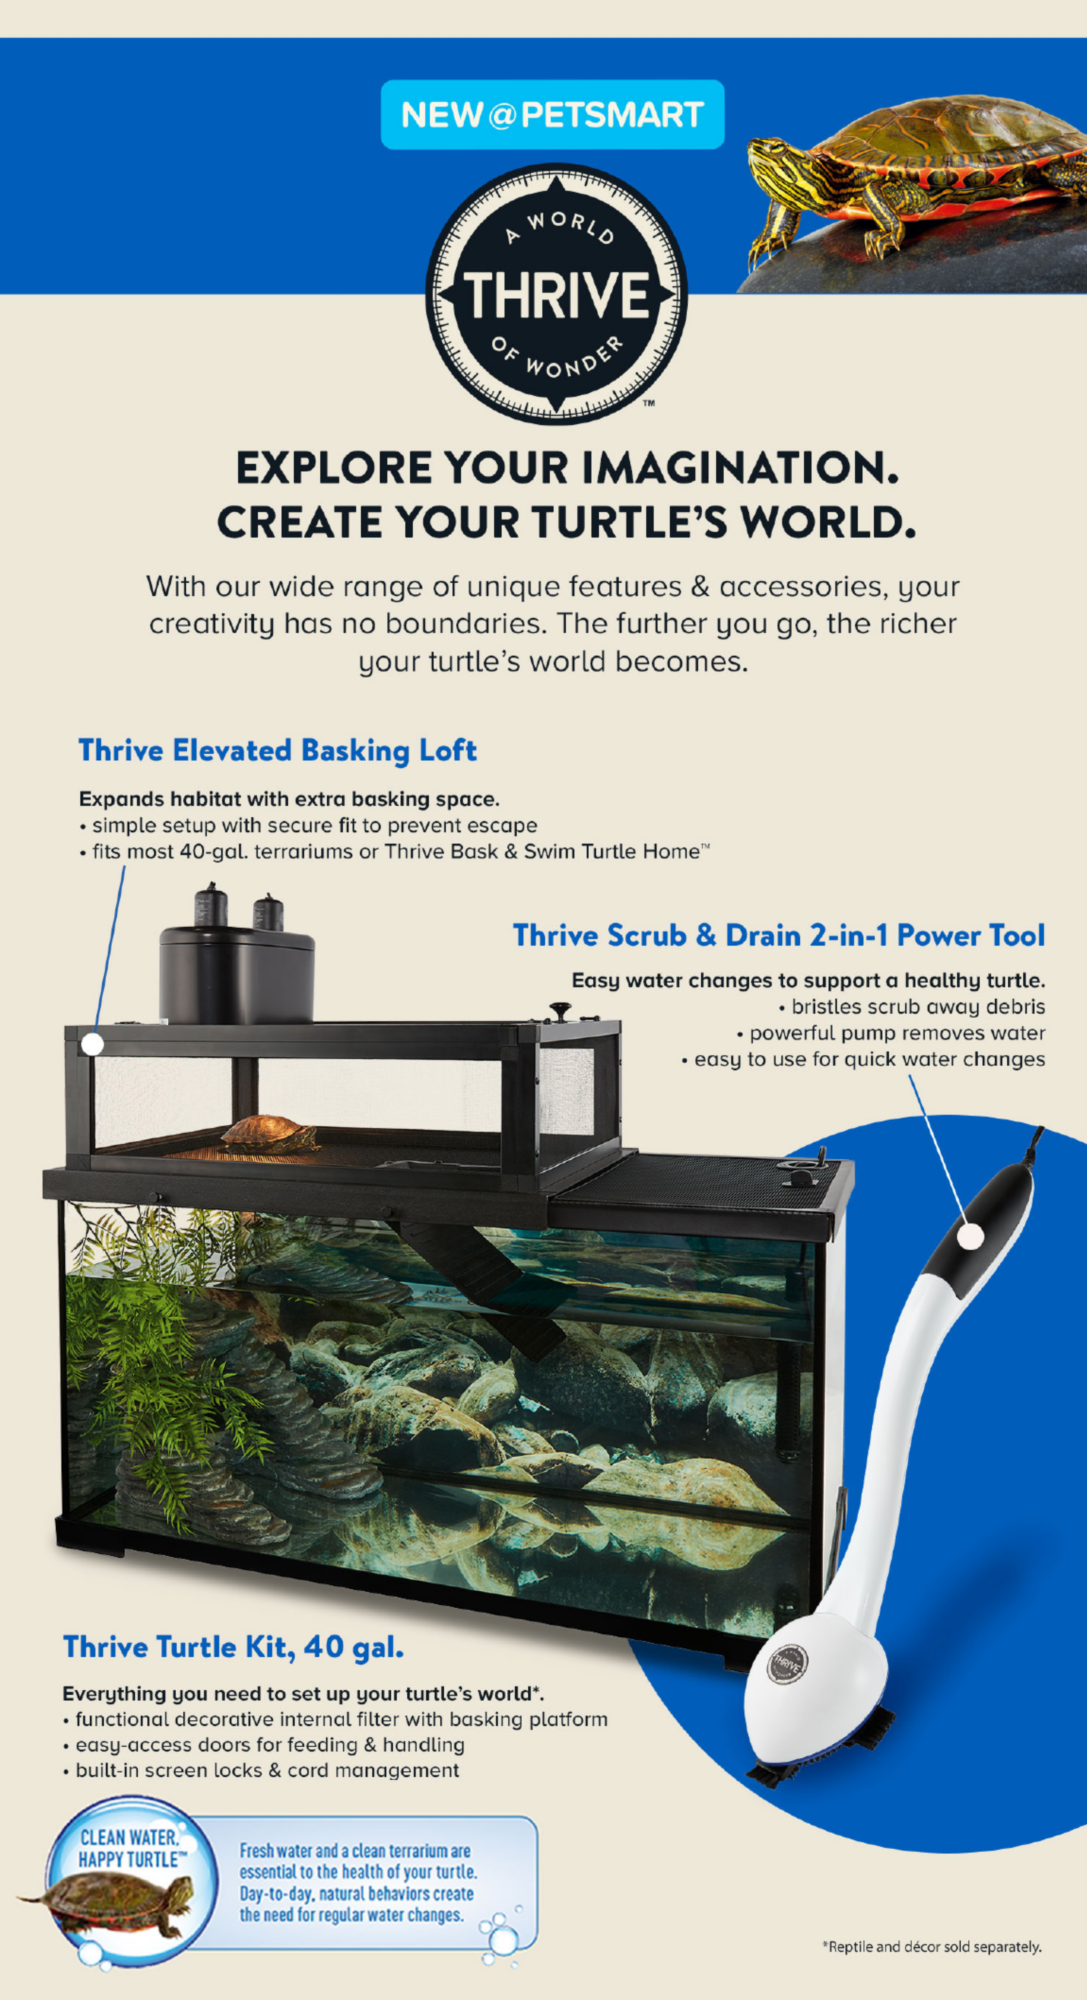 NEW at PETSMART                         A World of Wonder Thrive                         EXPLORE YOUR IMAGINATION. CREATE YOUR TURTLE'S WORLD.                          With our wide range of unique features & accessories, your creativity has no boundaries. The further you go. The richer your turtle's world becomes.                                                   Thrive Elevated Basking Loft: Expands habitat with extra basking space.                         *simple setup with secure fit to prevent escape                         *fits most 40-gal. terrariums or Thrive bask & swim turtle home.                                                   Thrive Scrub & Drain 2-ni-1 power tool: Easy water changes to support a healthy turtle.                         *bristles scrub away debris                         *powerful pump removes water                         easy to use for quick water changes                                                  Thrive Turtle Kit, 40 gal. : Everything you need to set up your turtle's world.                          *functional decorative internal filter with basking platform                         *easy-access doors for feeding & handling                         *built-in screen locks & cord management                                                  CLEAN Water Happy Turtle: Fresh water and a clean terrarium are essential to the health of your turtle. Day-to-day, natural behaviors create the need for regular water changes.